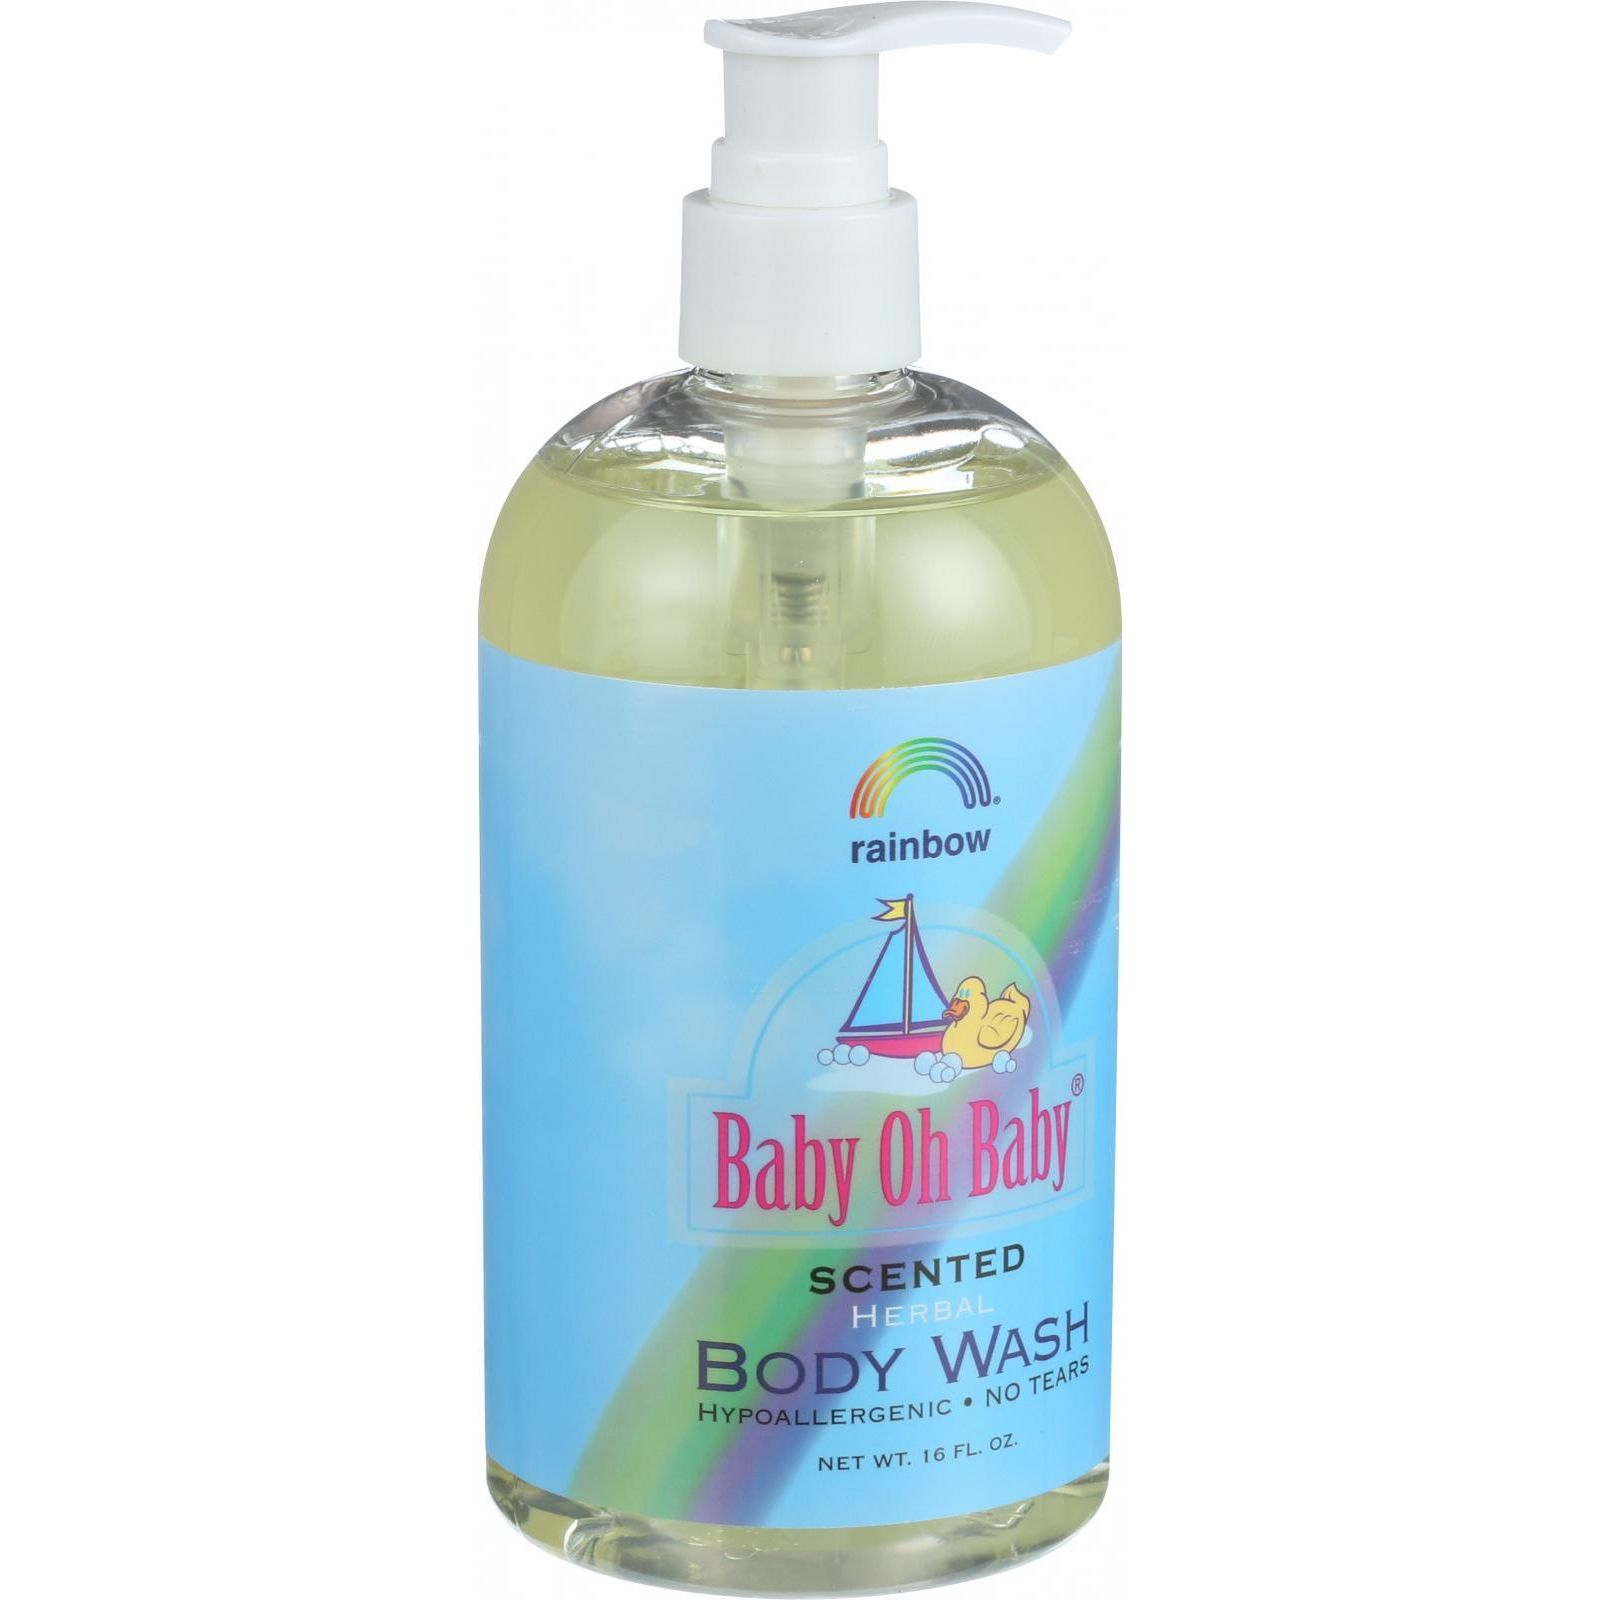 Baby Oh Baby Body Wash Scented Rainbow Research 16 Ounce Liquid